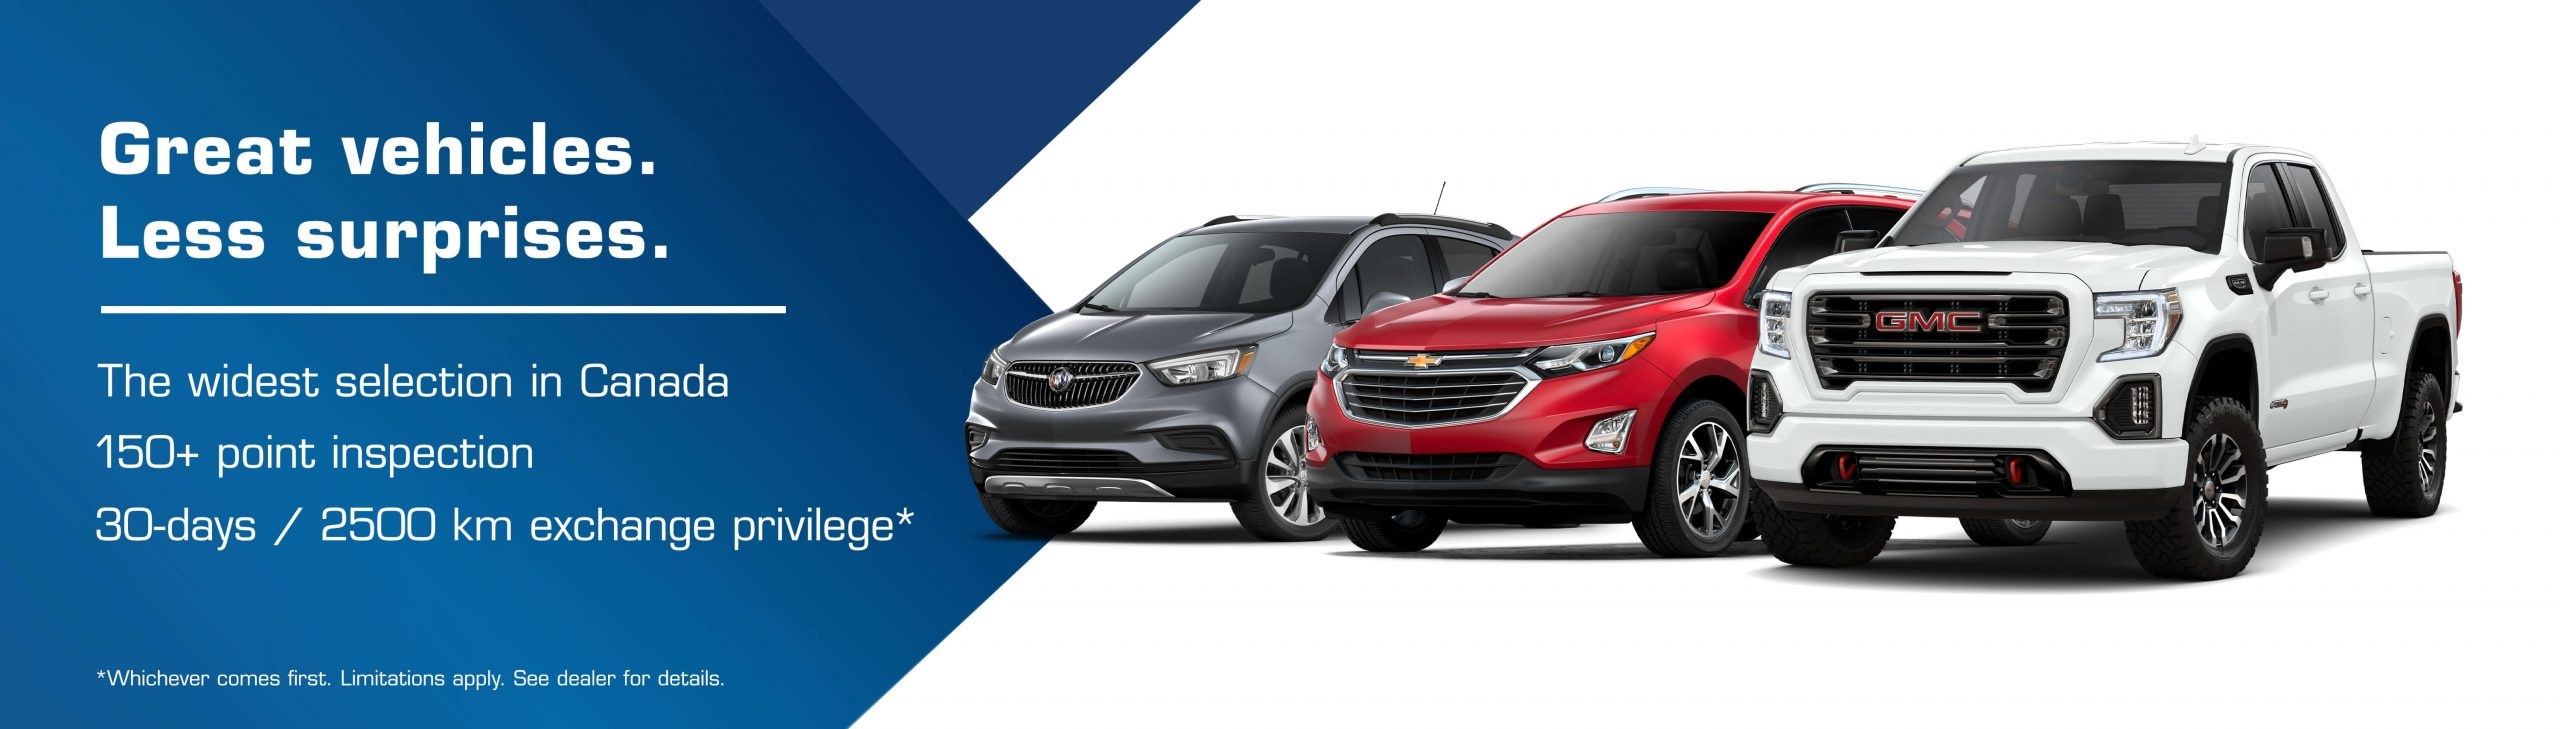 Great Vehicles. Less surprises. The widest selection in Canada | 150+ point inspection | 30 days / 2500km exchange privelege *whichever comes first. Limitations apply. See dealer for details.